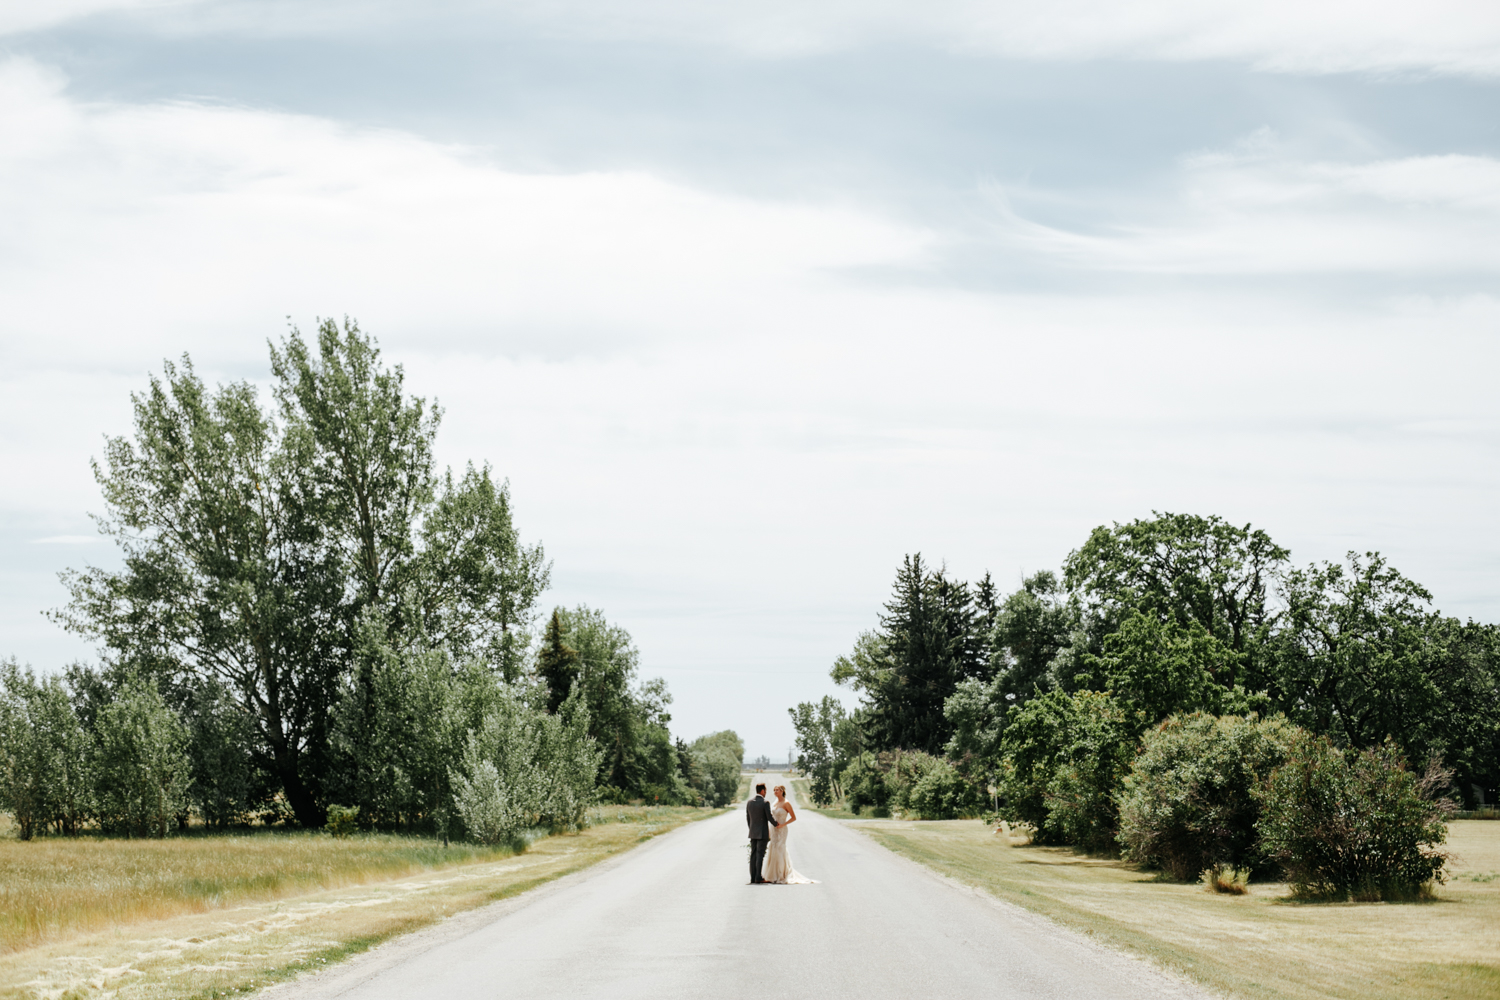 lethbridge-wedding-photographer-love-and-be-loved-photography-bailey-joel-lethbridge-wedding-picture-image-photo-68.jpg